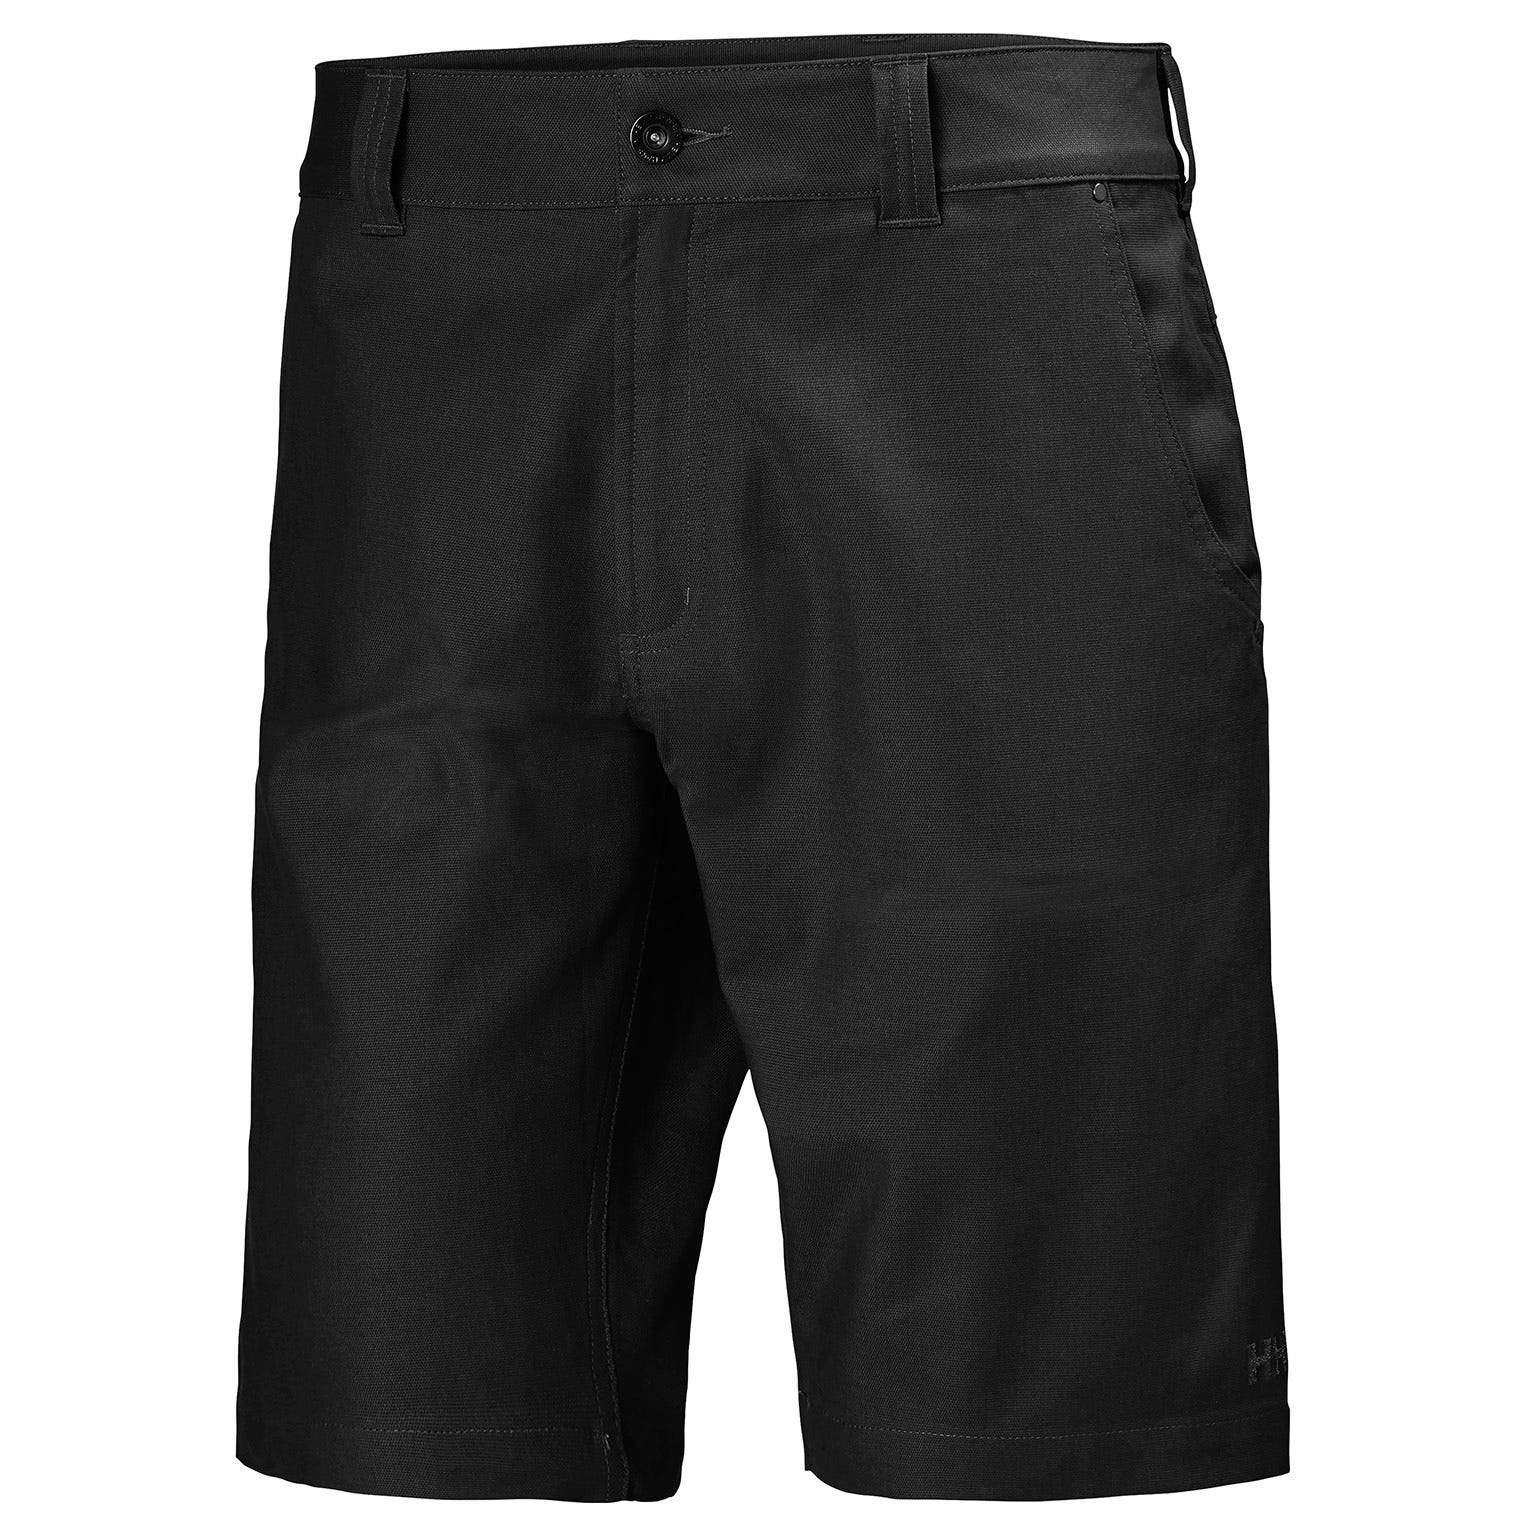 Helly Hansen Mens Essential Canvas Shorts Hiking Trouser Black S